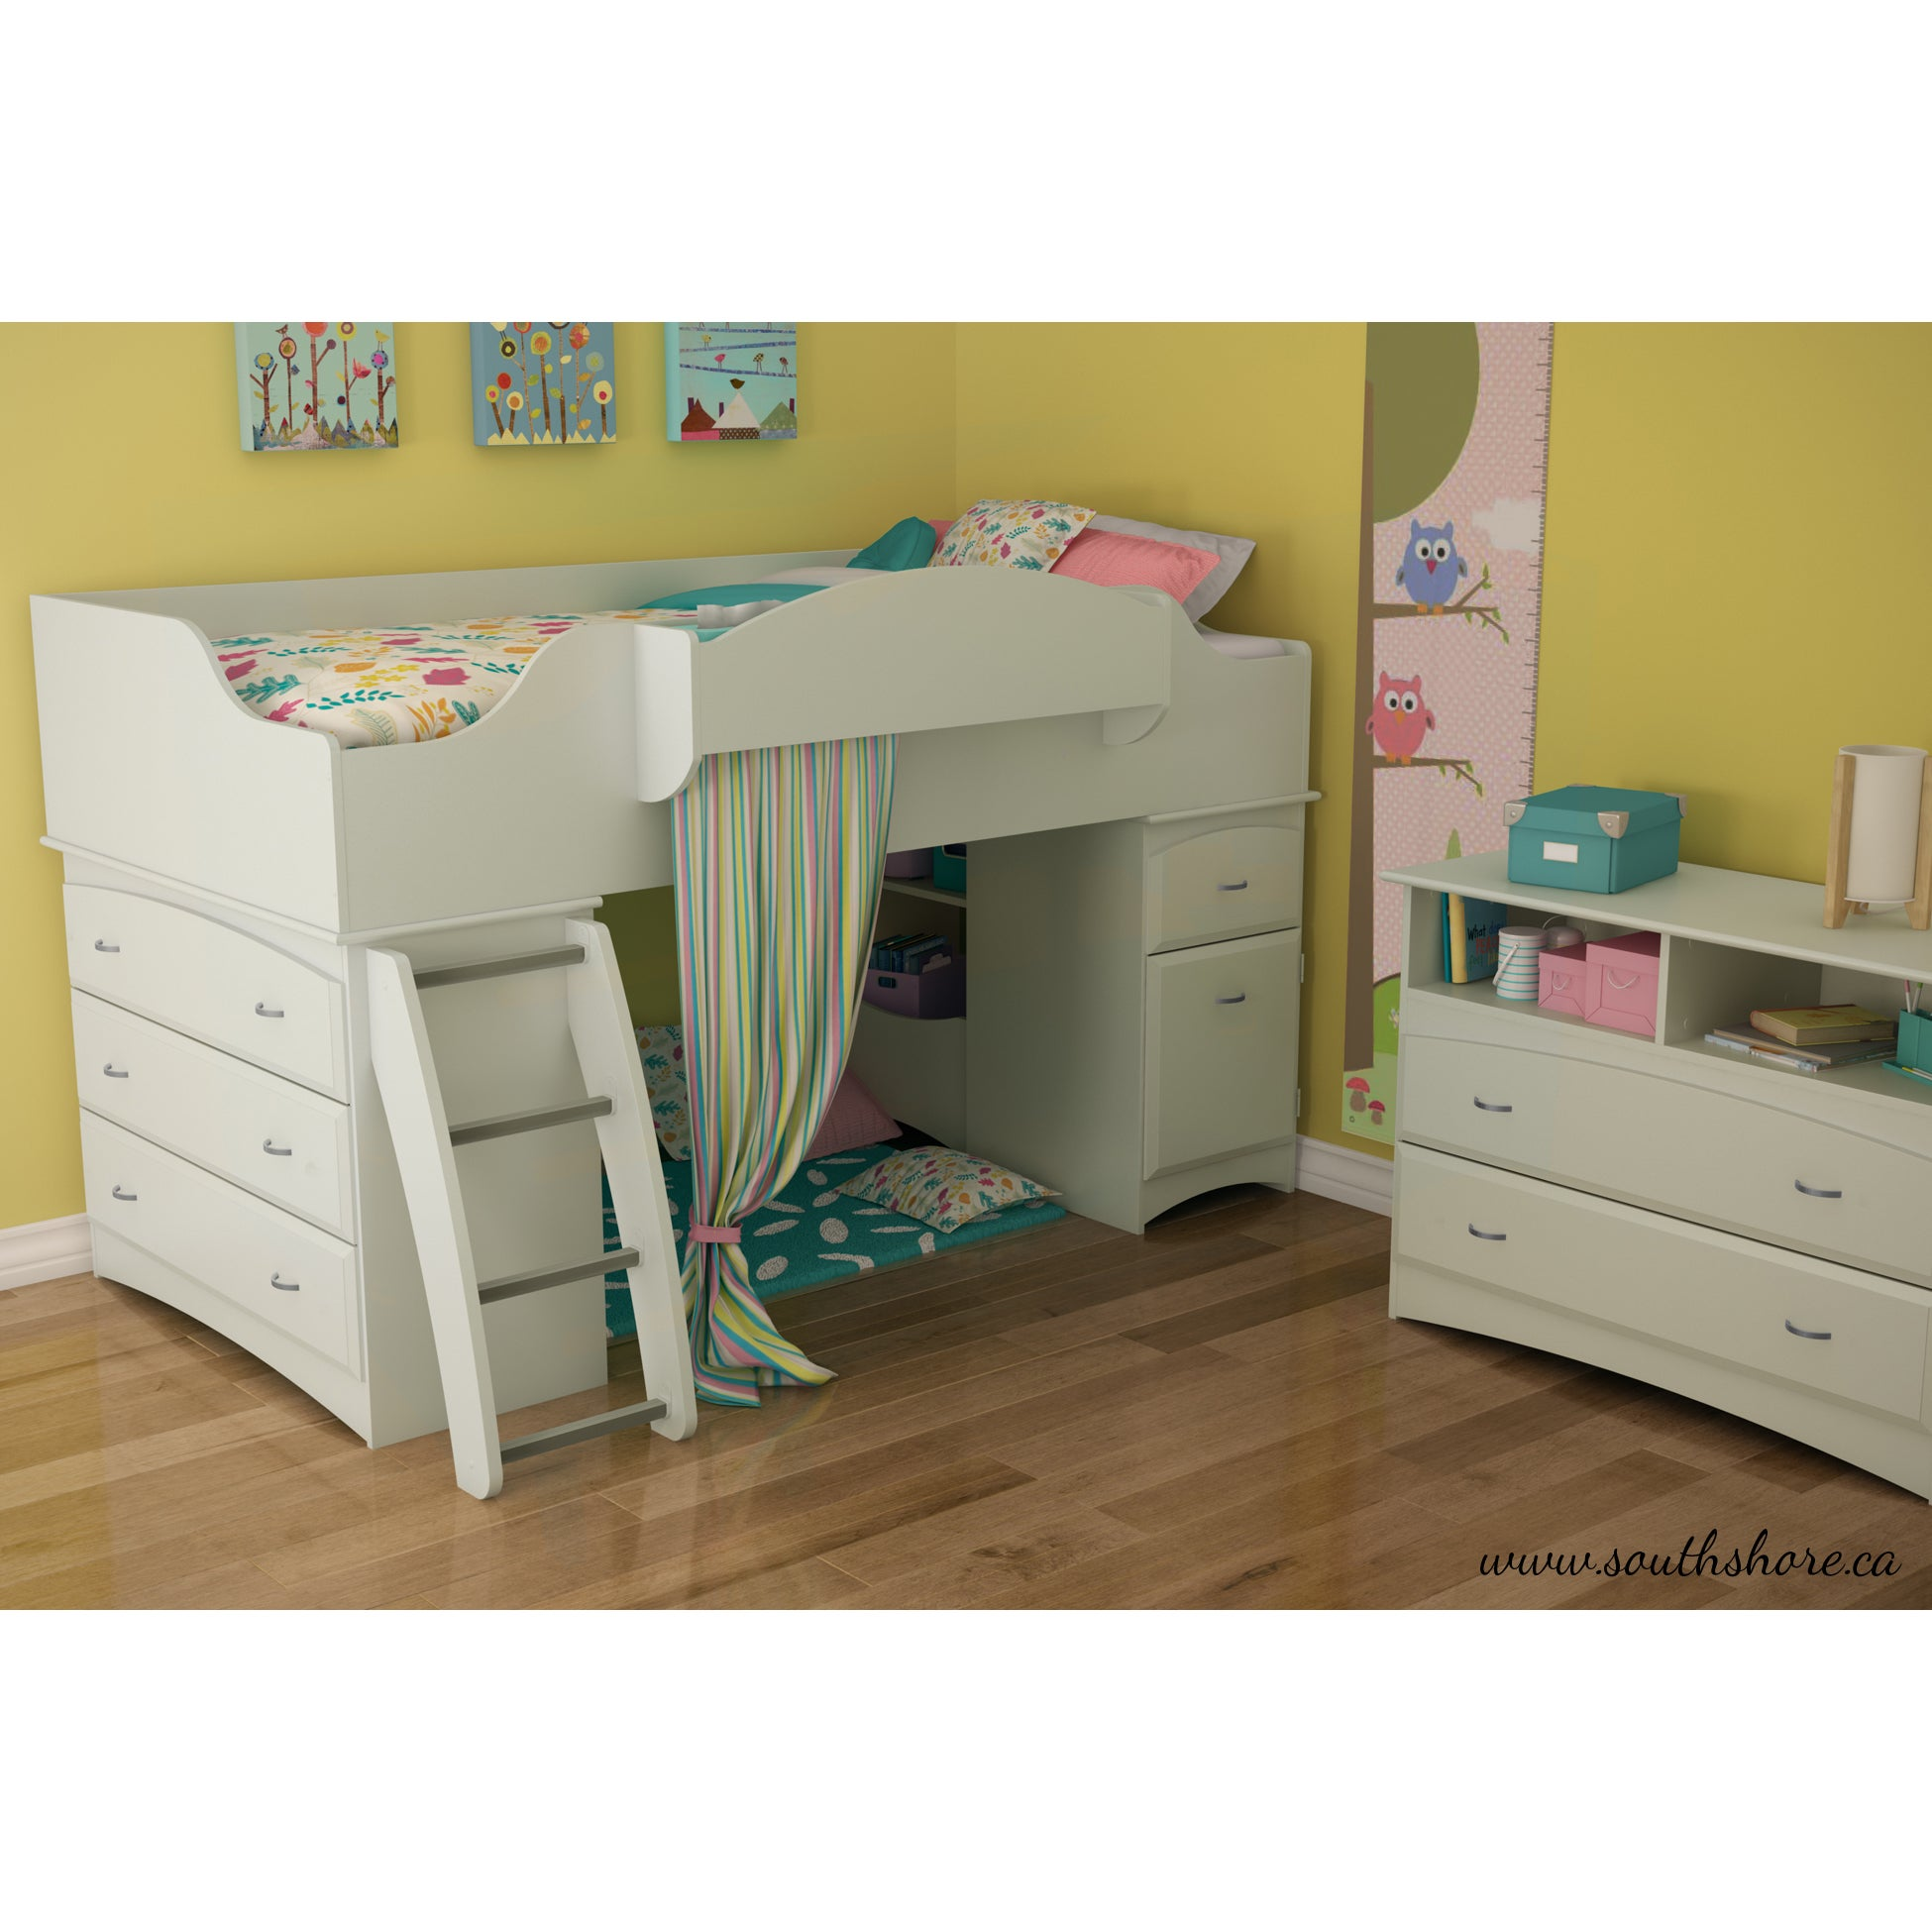 Shop South Shore Imagine Twin Loft Bed Free Shipping Today